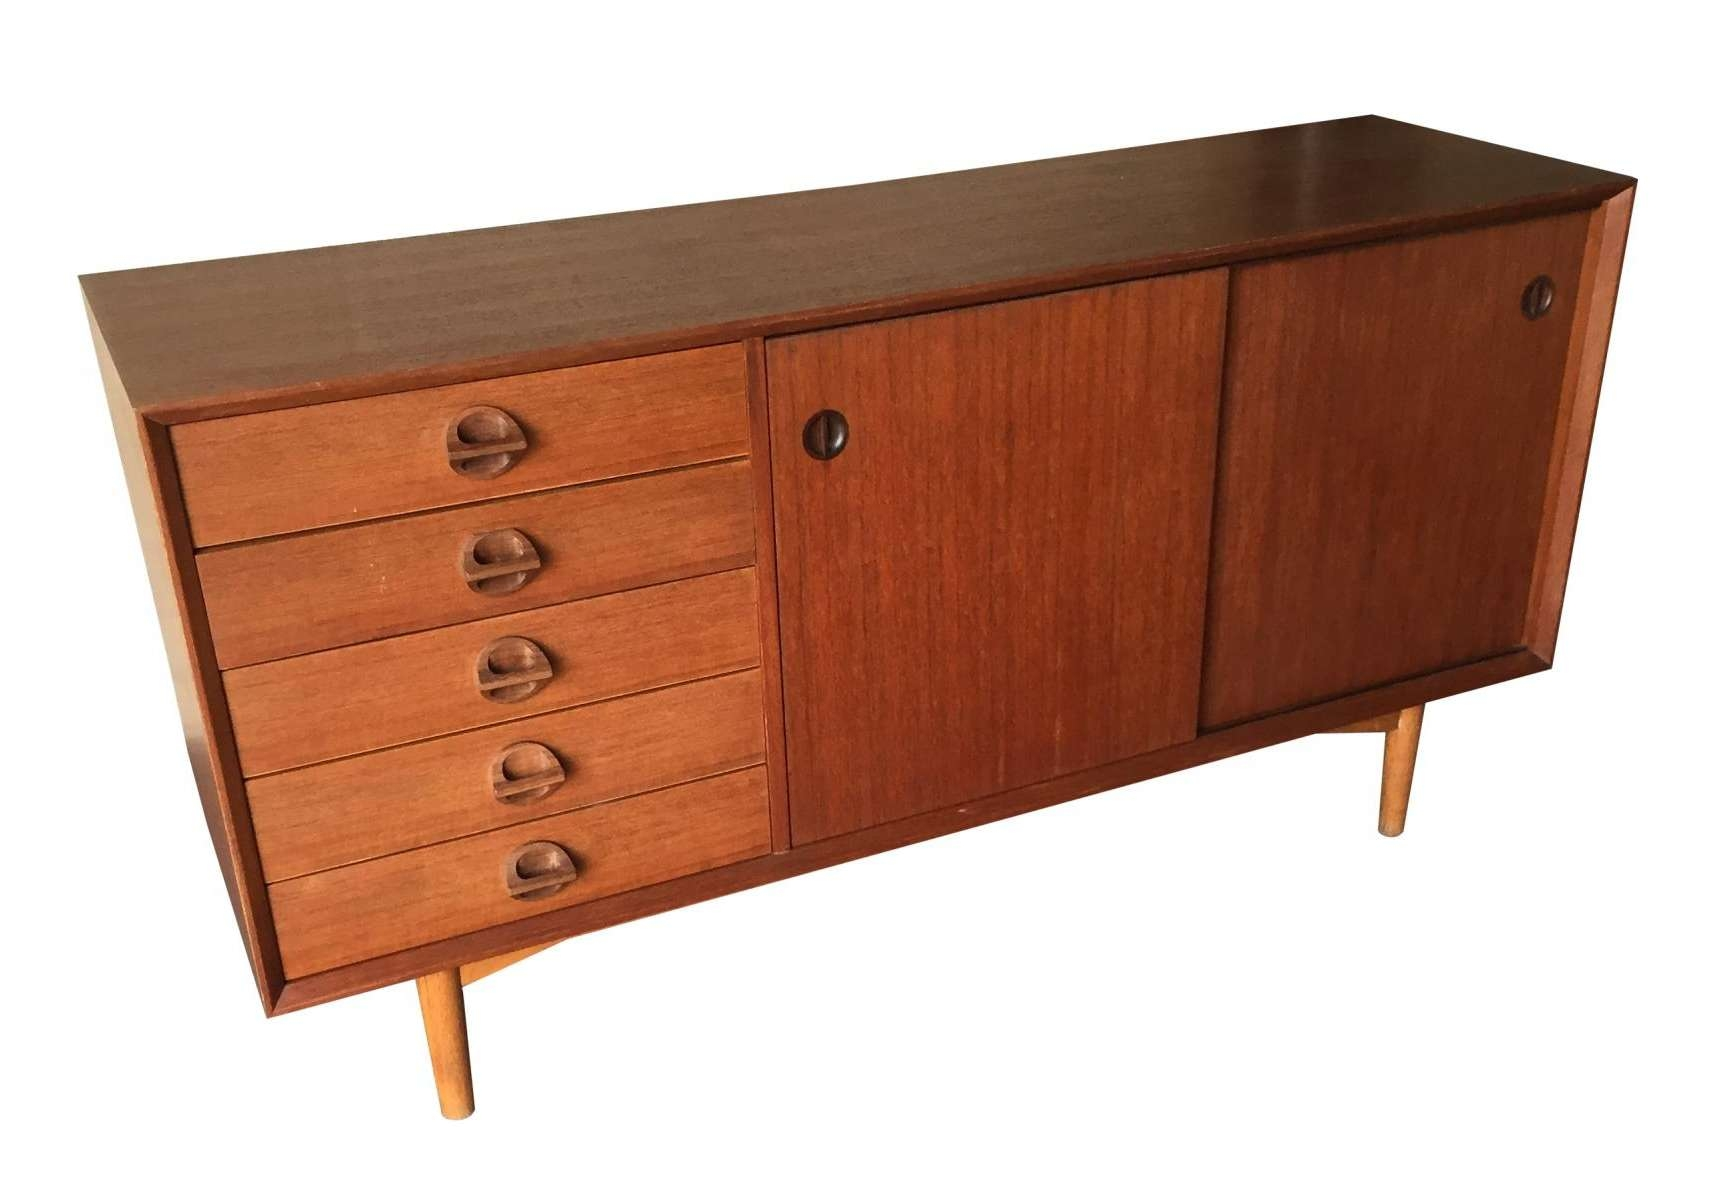 Vintage Sideboard With Sliding Doors, 1960S For Sale At Pamono Intended For Vintage Sideboards And Buffets (Gallery 17 of 20)